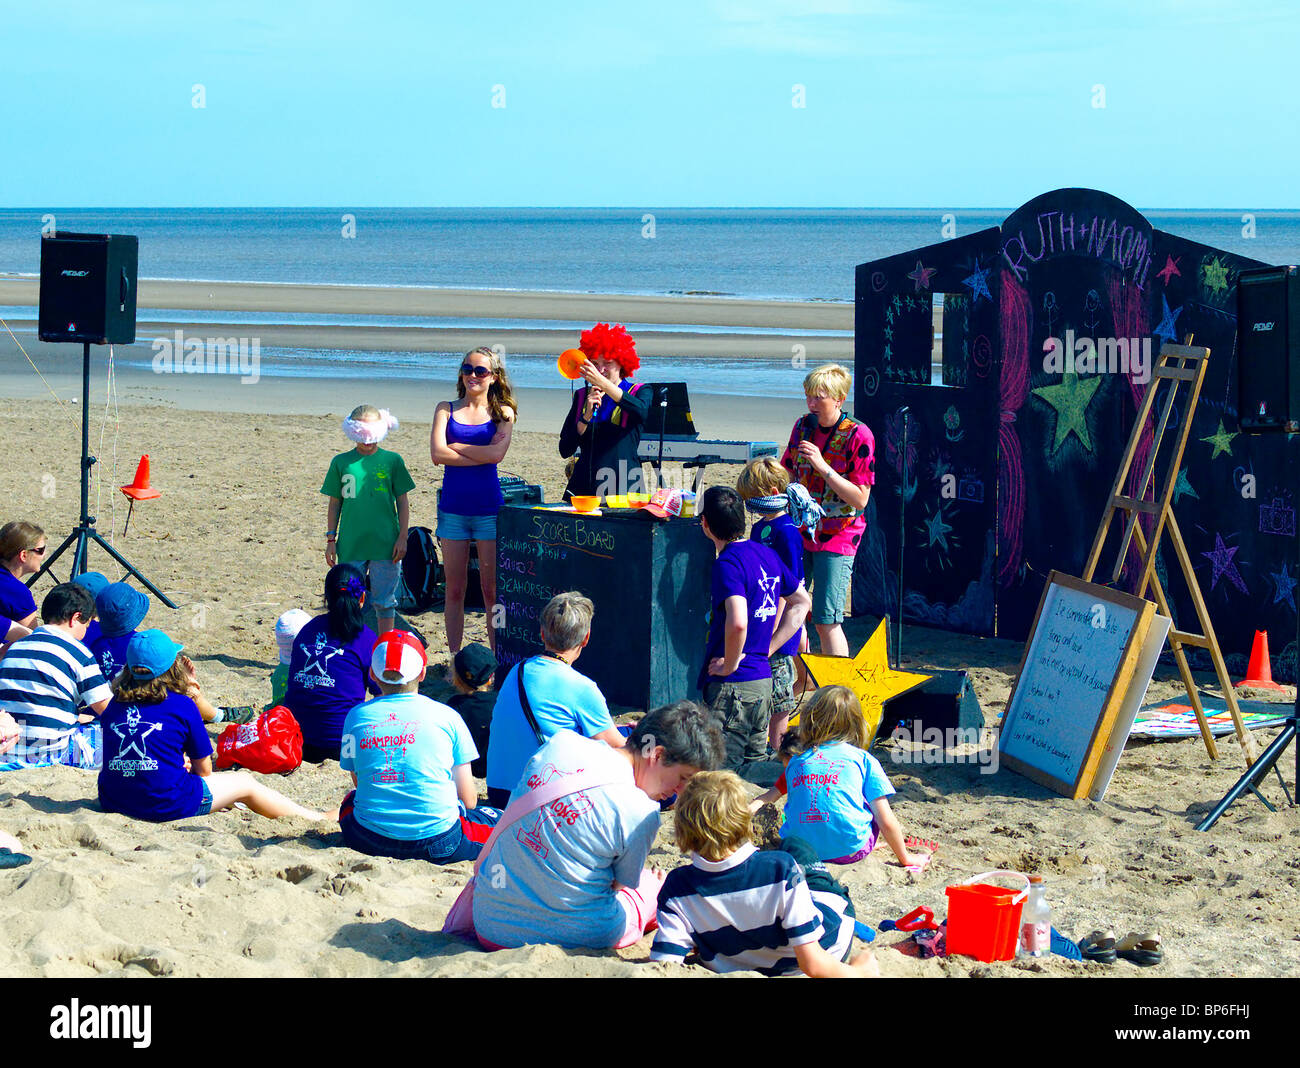 Beach entertainers,entertaining families on the beach at Sutton-on-sea,Lincolnshire,UK. - Stock Image